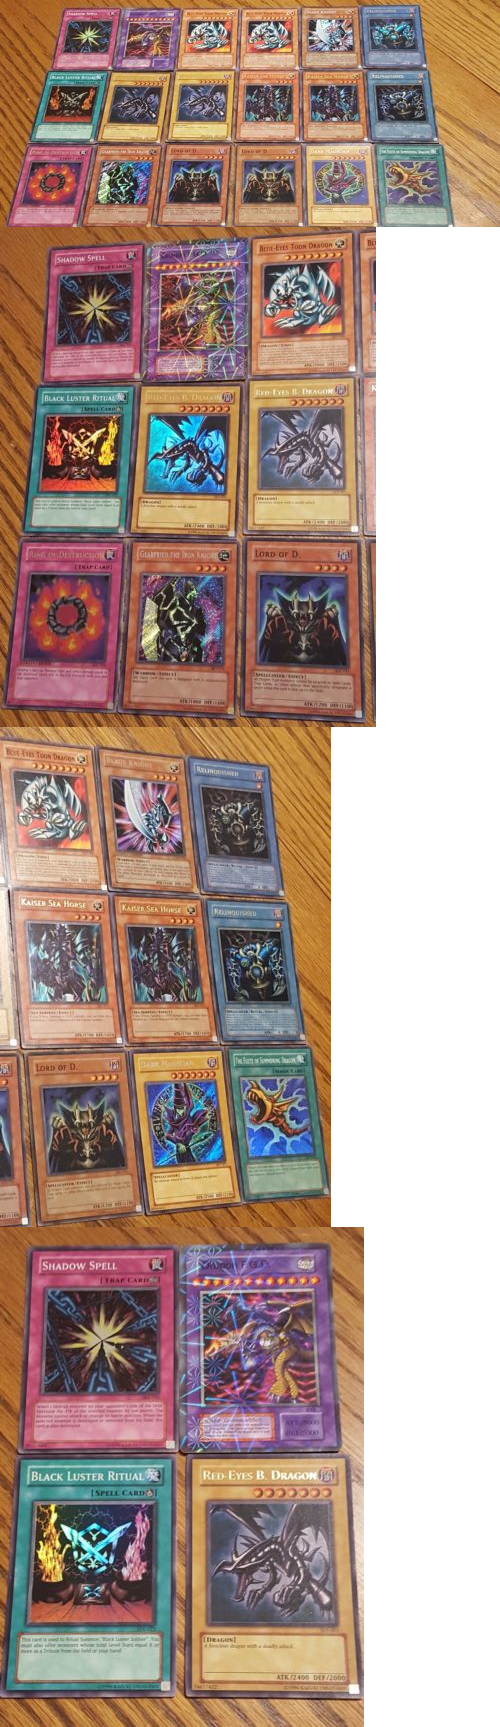 yu gi oh mixed card lots 49209 yugioh cards lot of 18 including